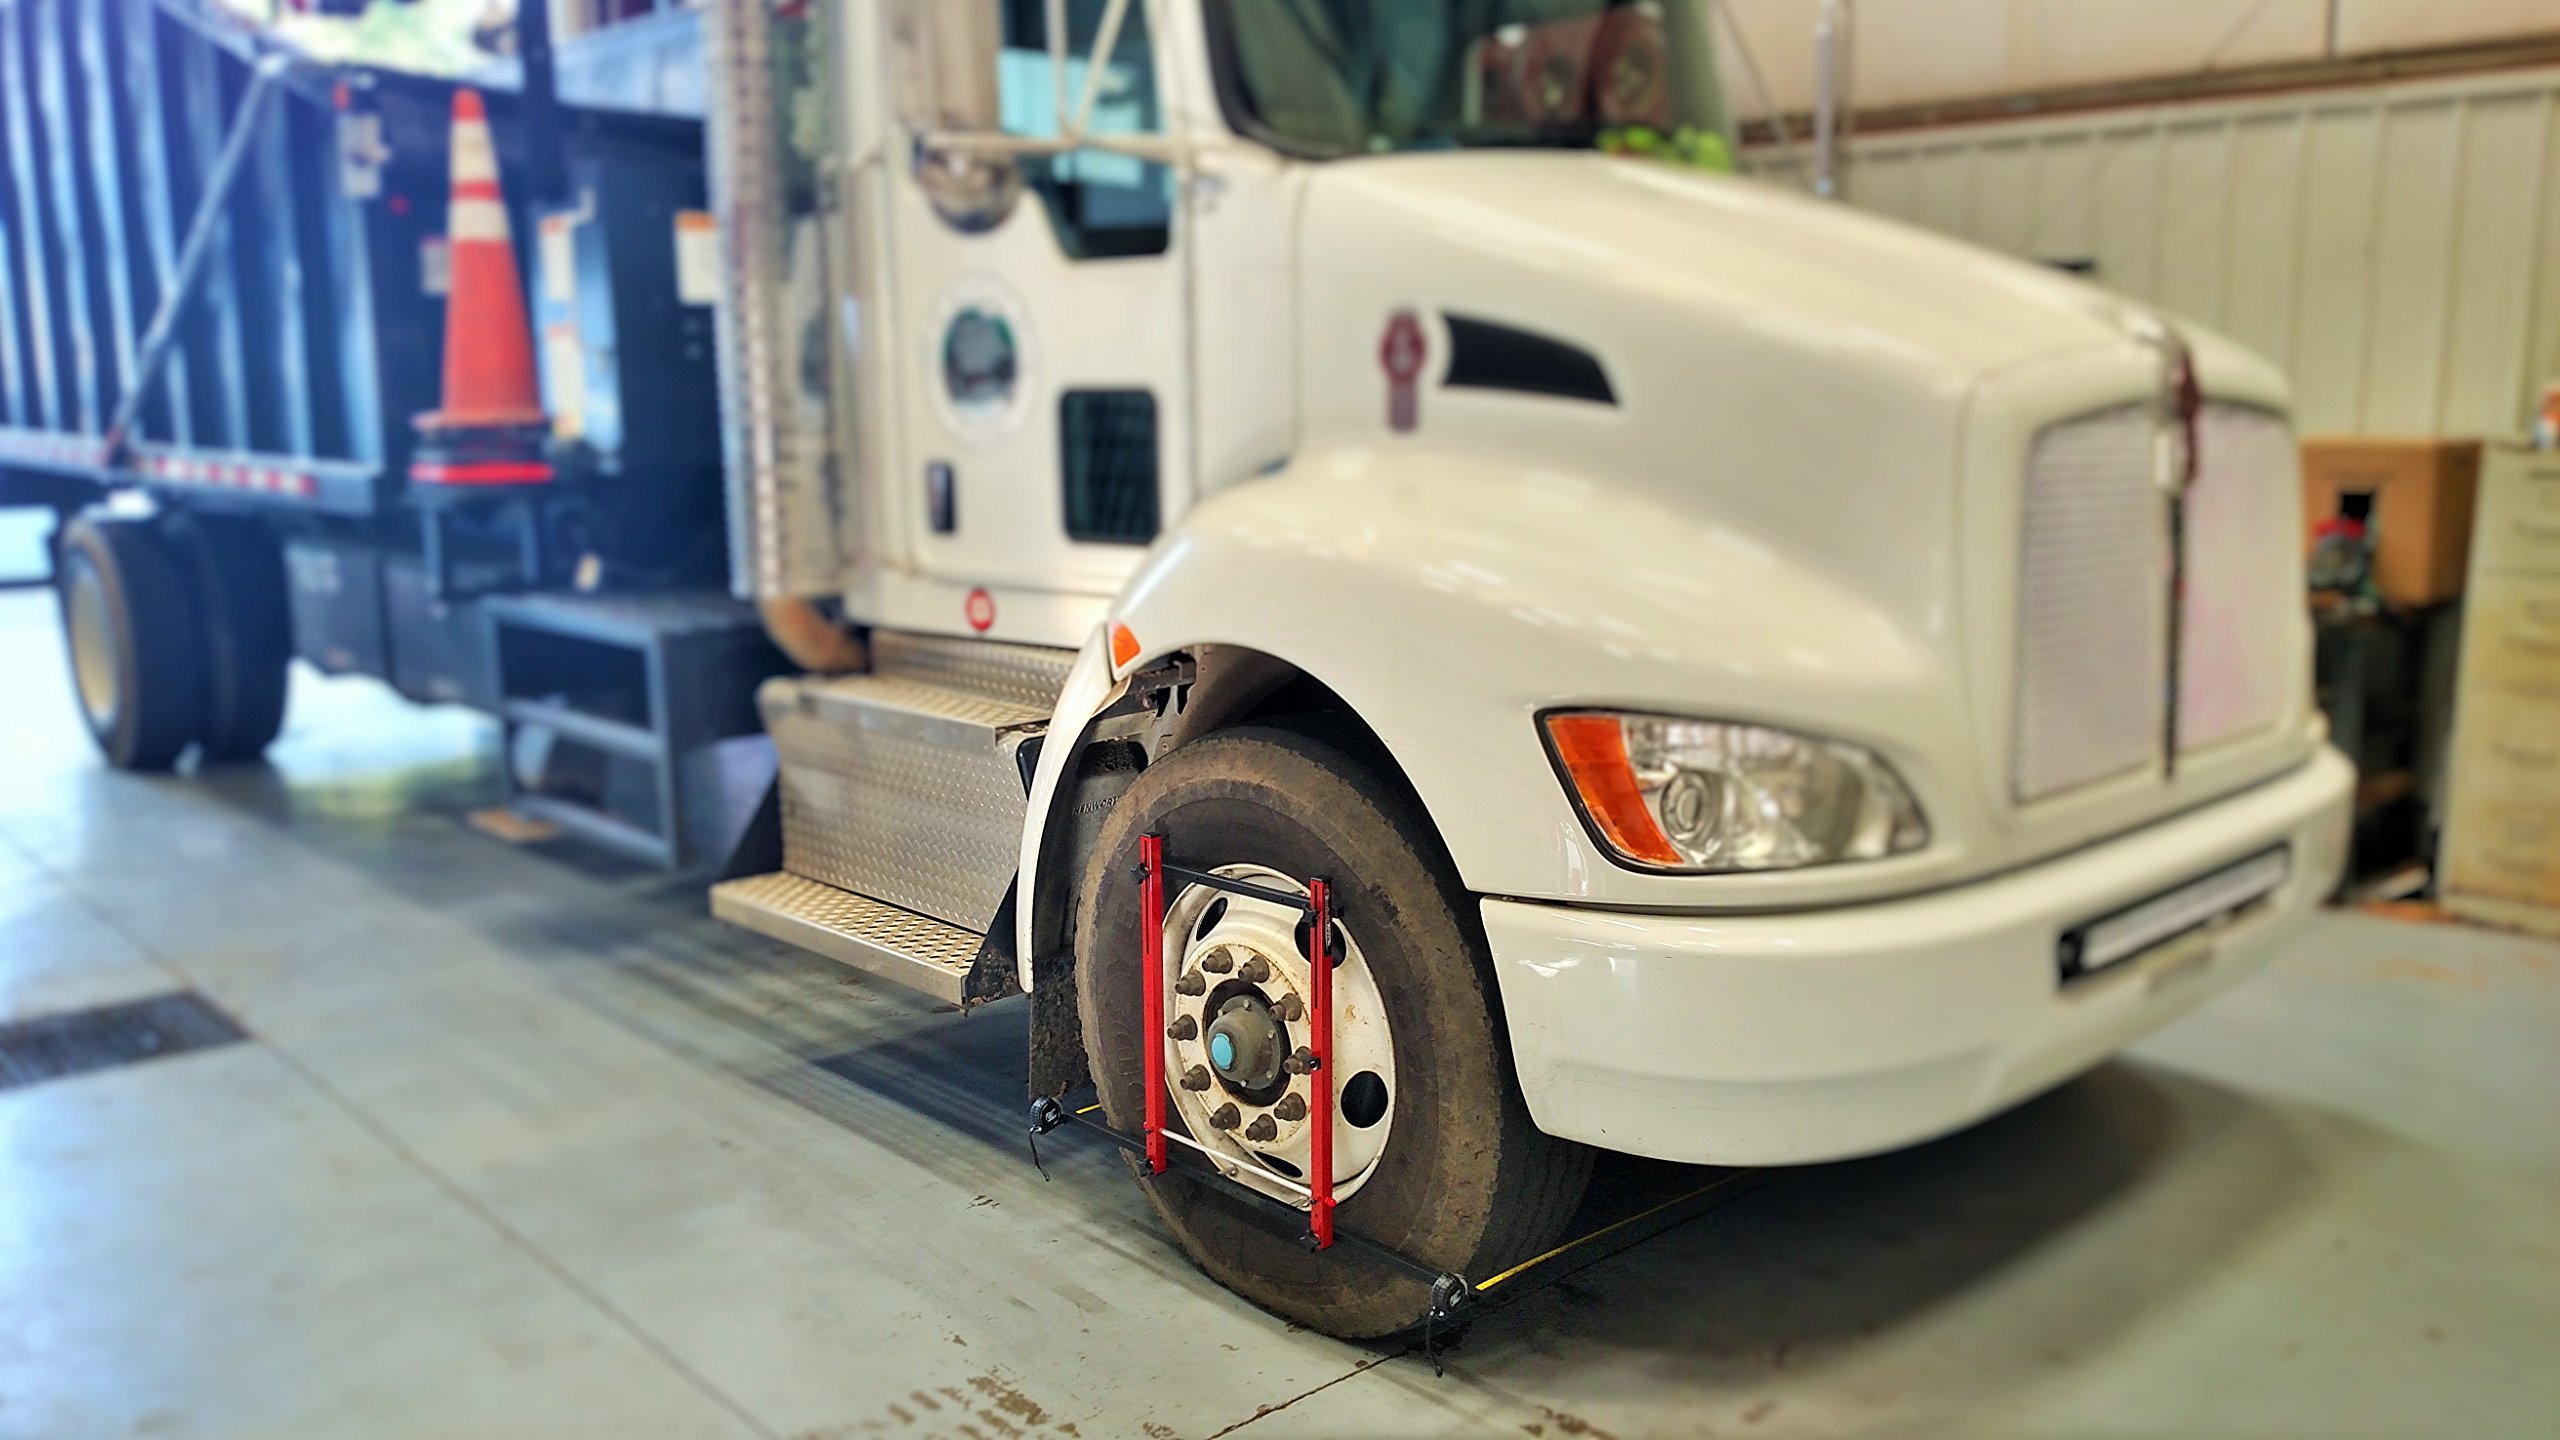 Large Wheel Alignment Kit Complete for both sides - Truck, Semi, Bus, Firetruck by QuickTrick (Image #2)